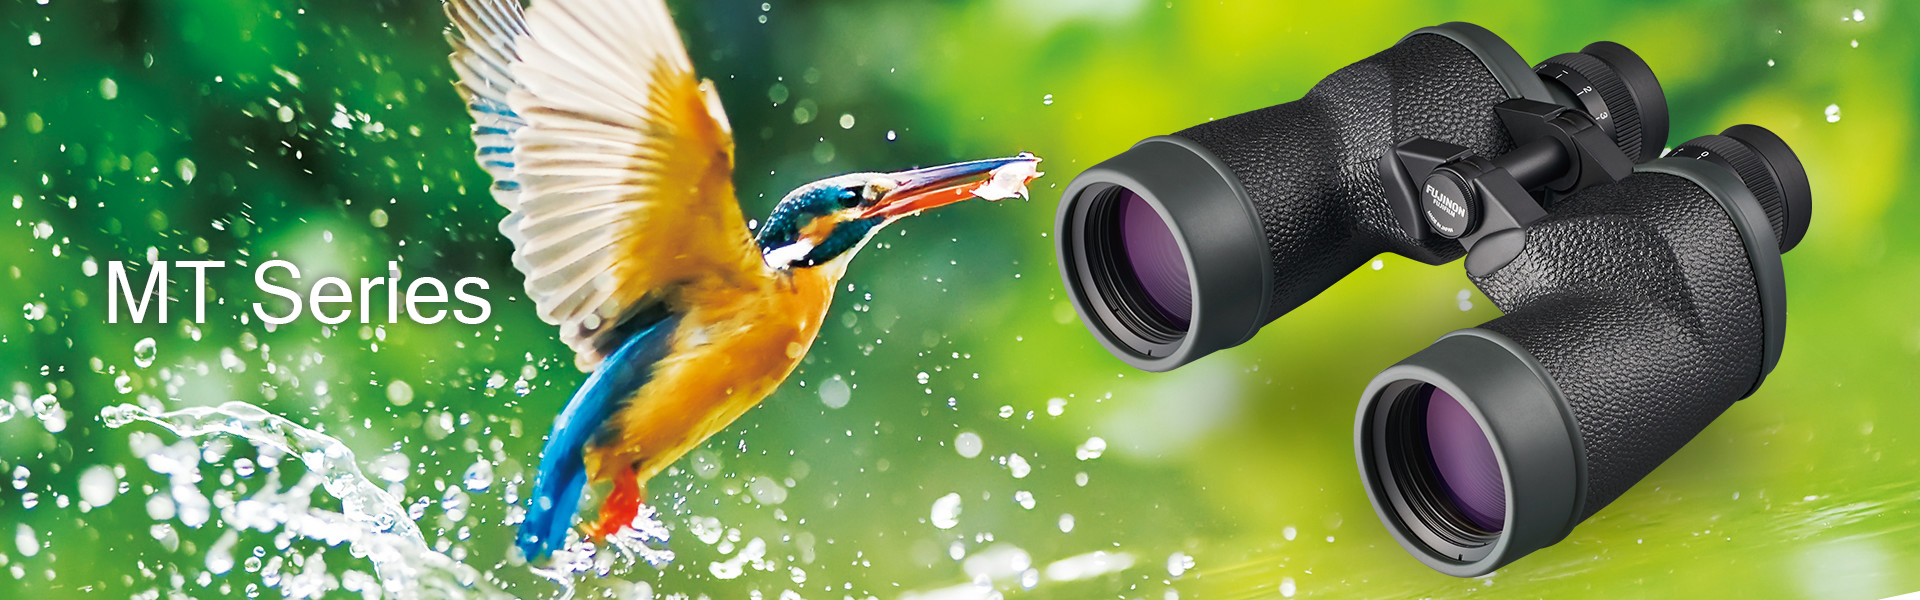 [photo] Black binoculars in front of blurry green background with hummingbird splashing water and flying